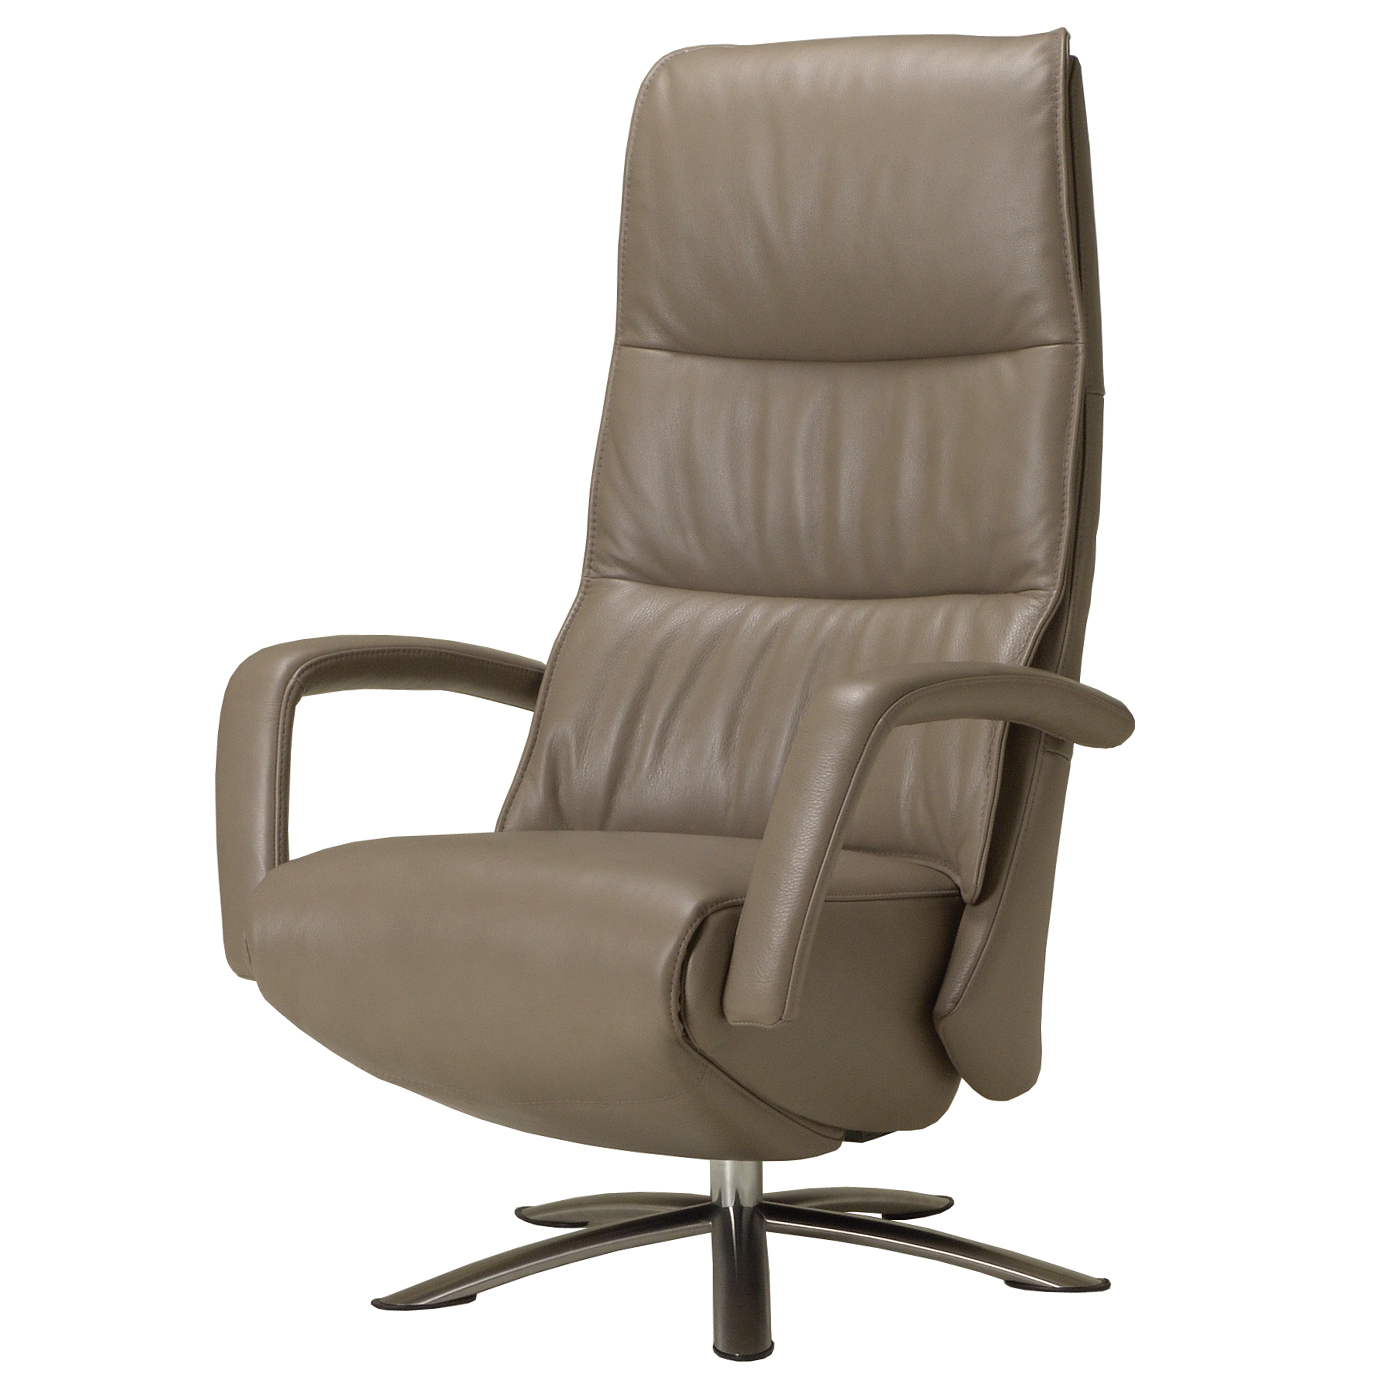 Twice TW010 Relaxfauteuil